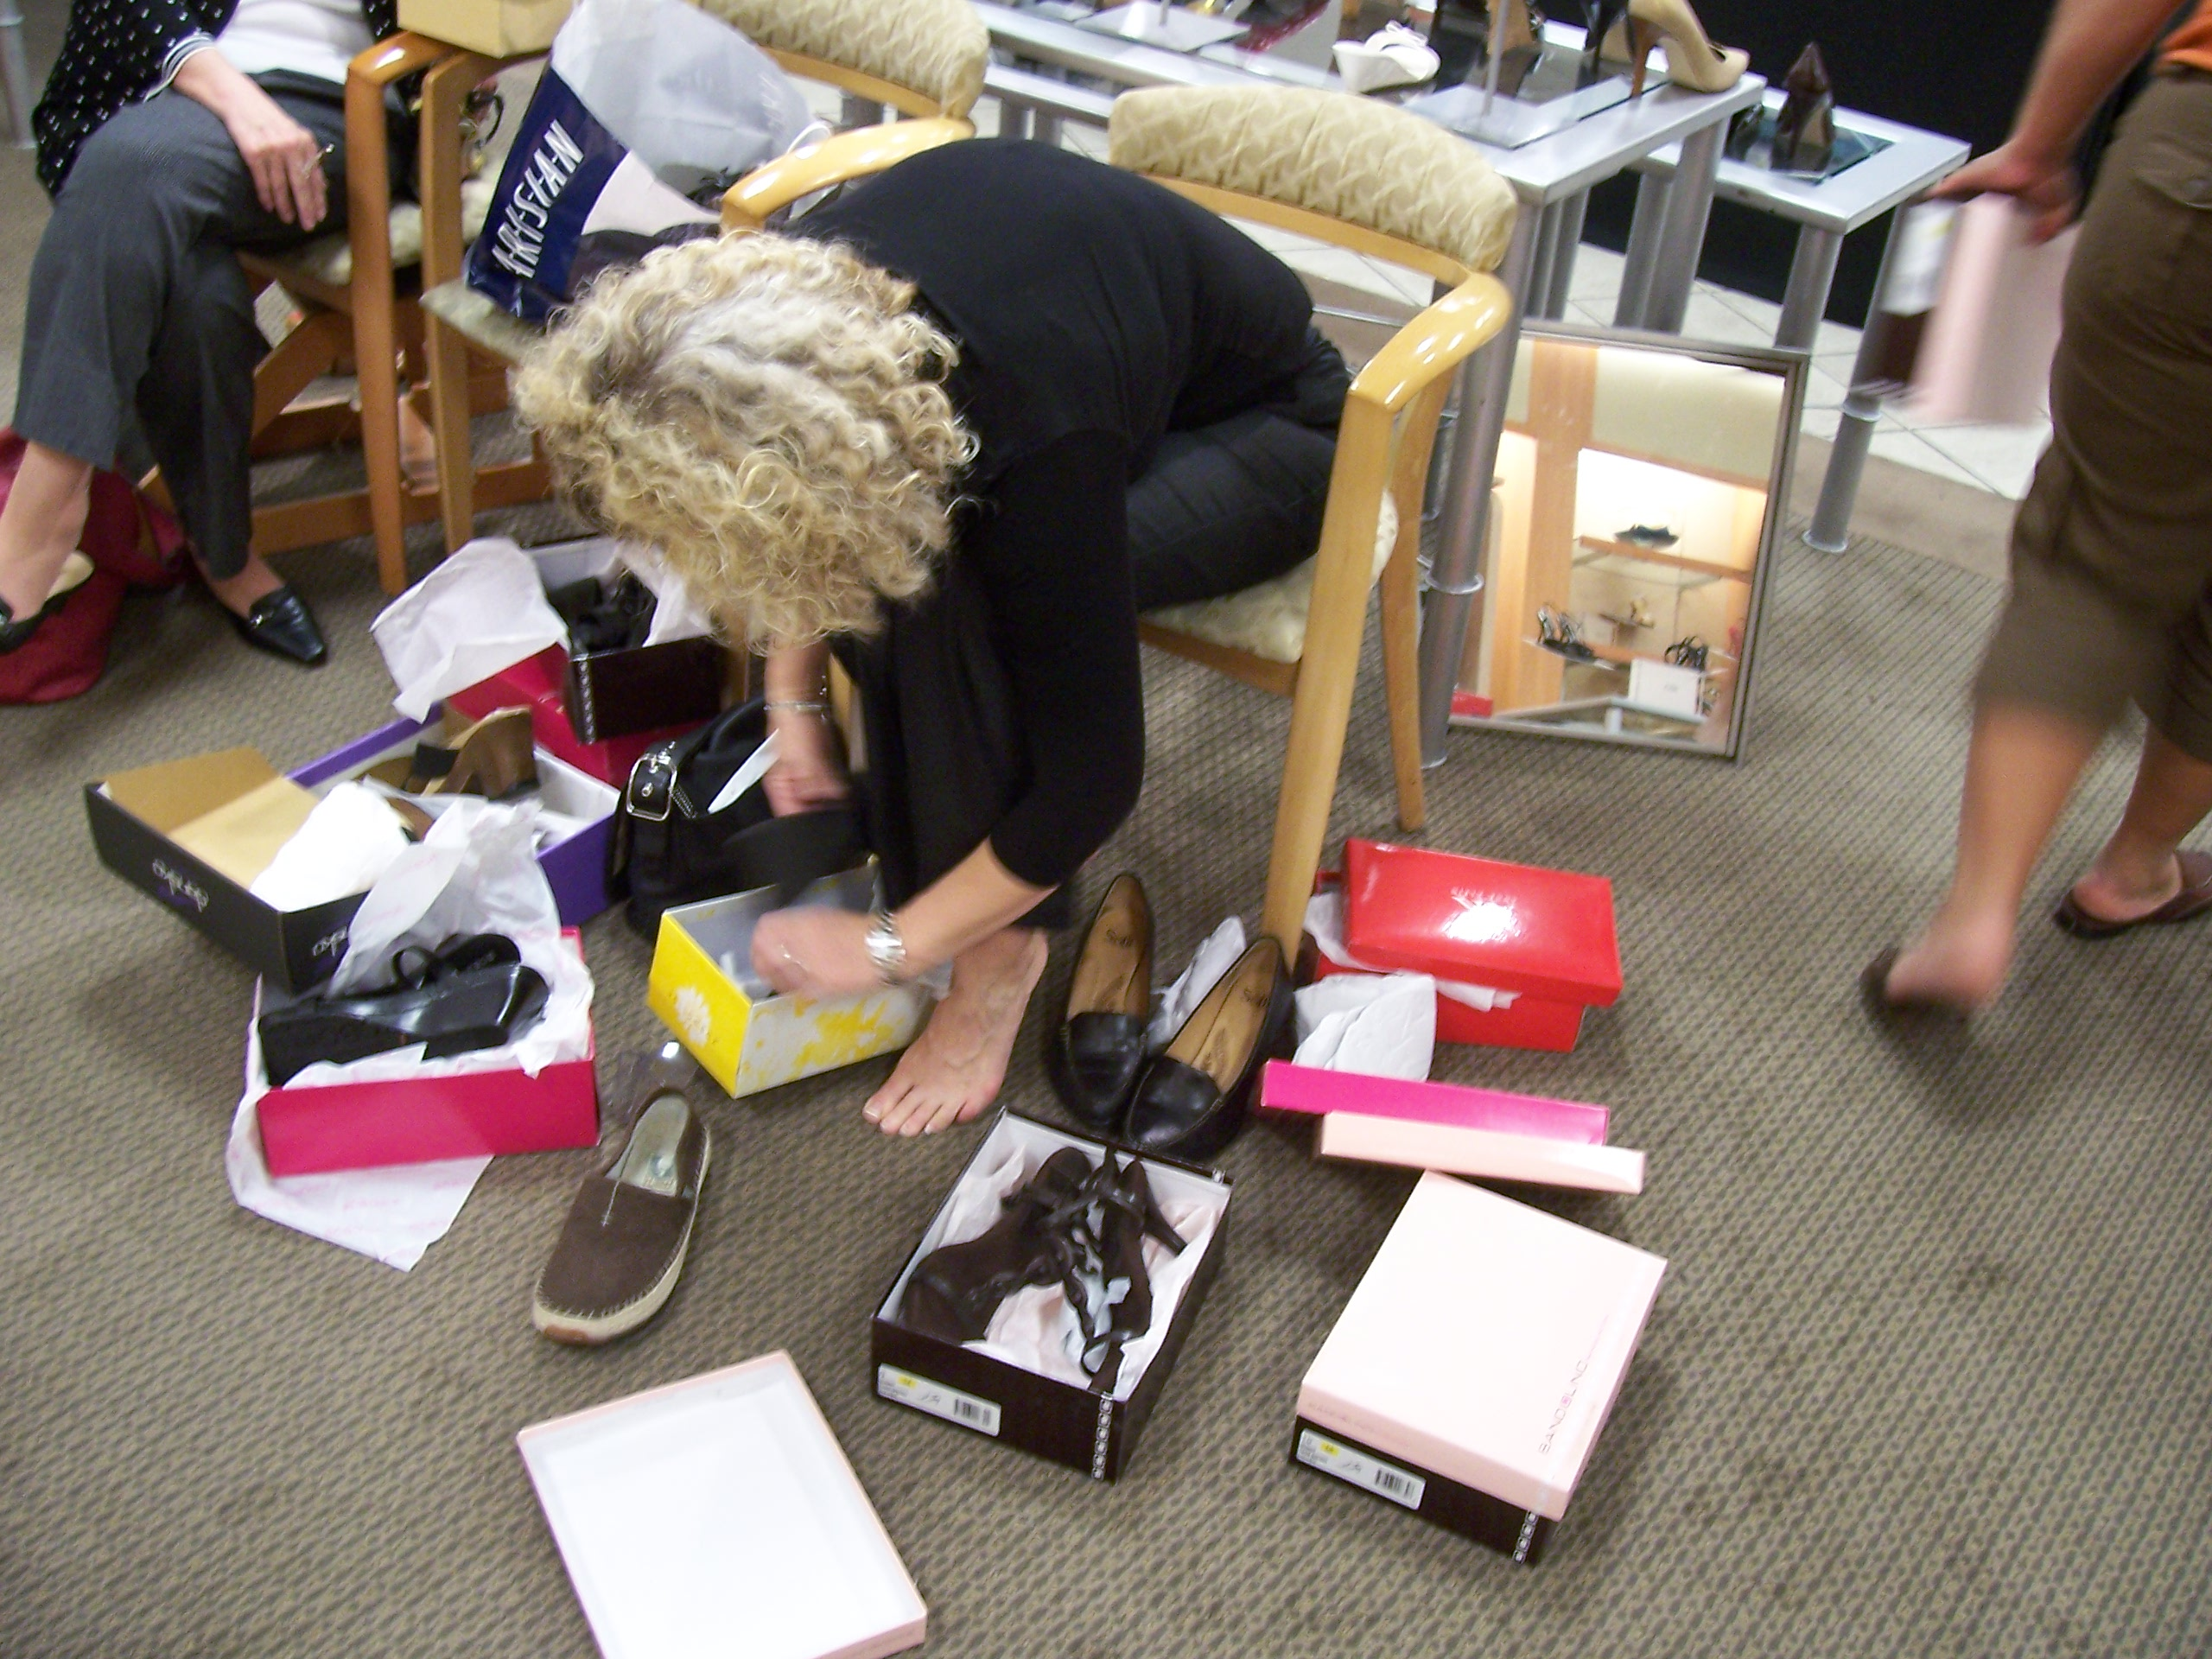 Shoe shopping with friends